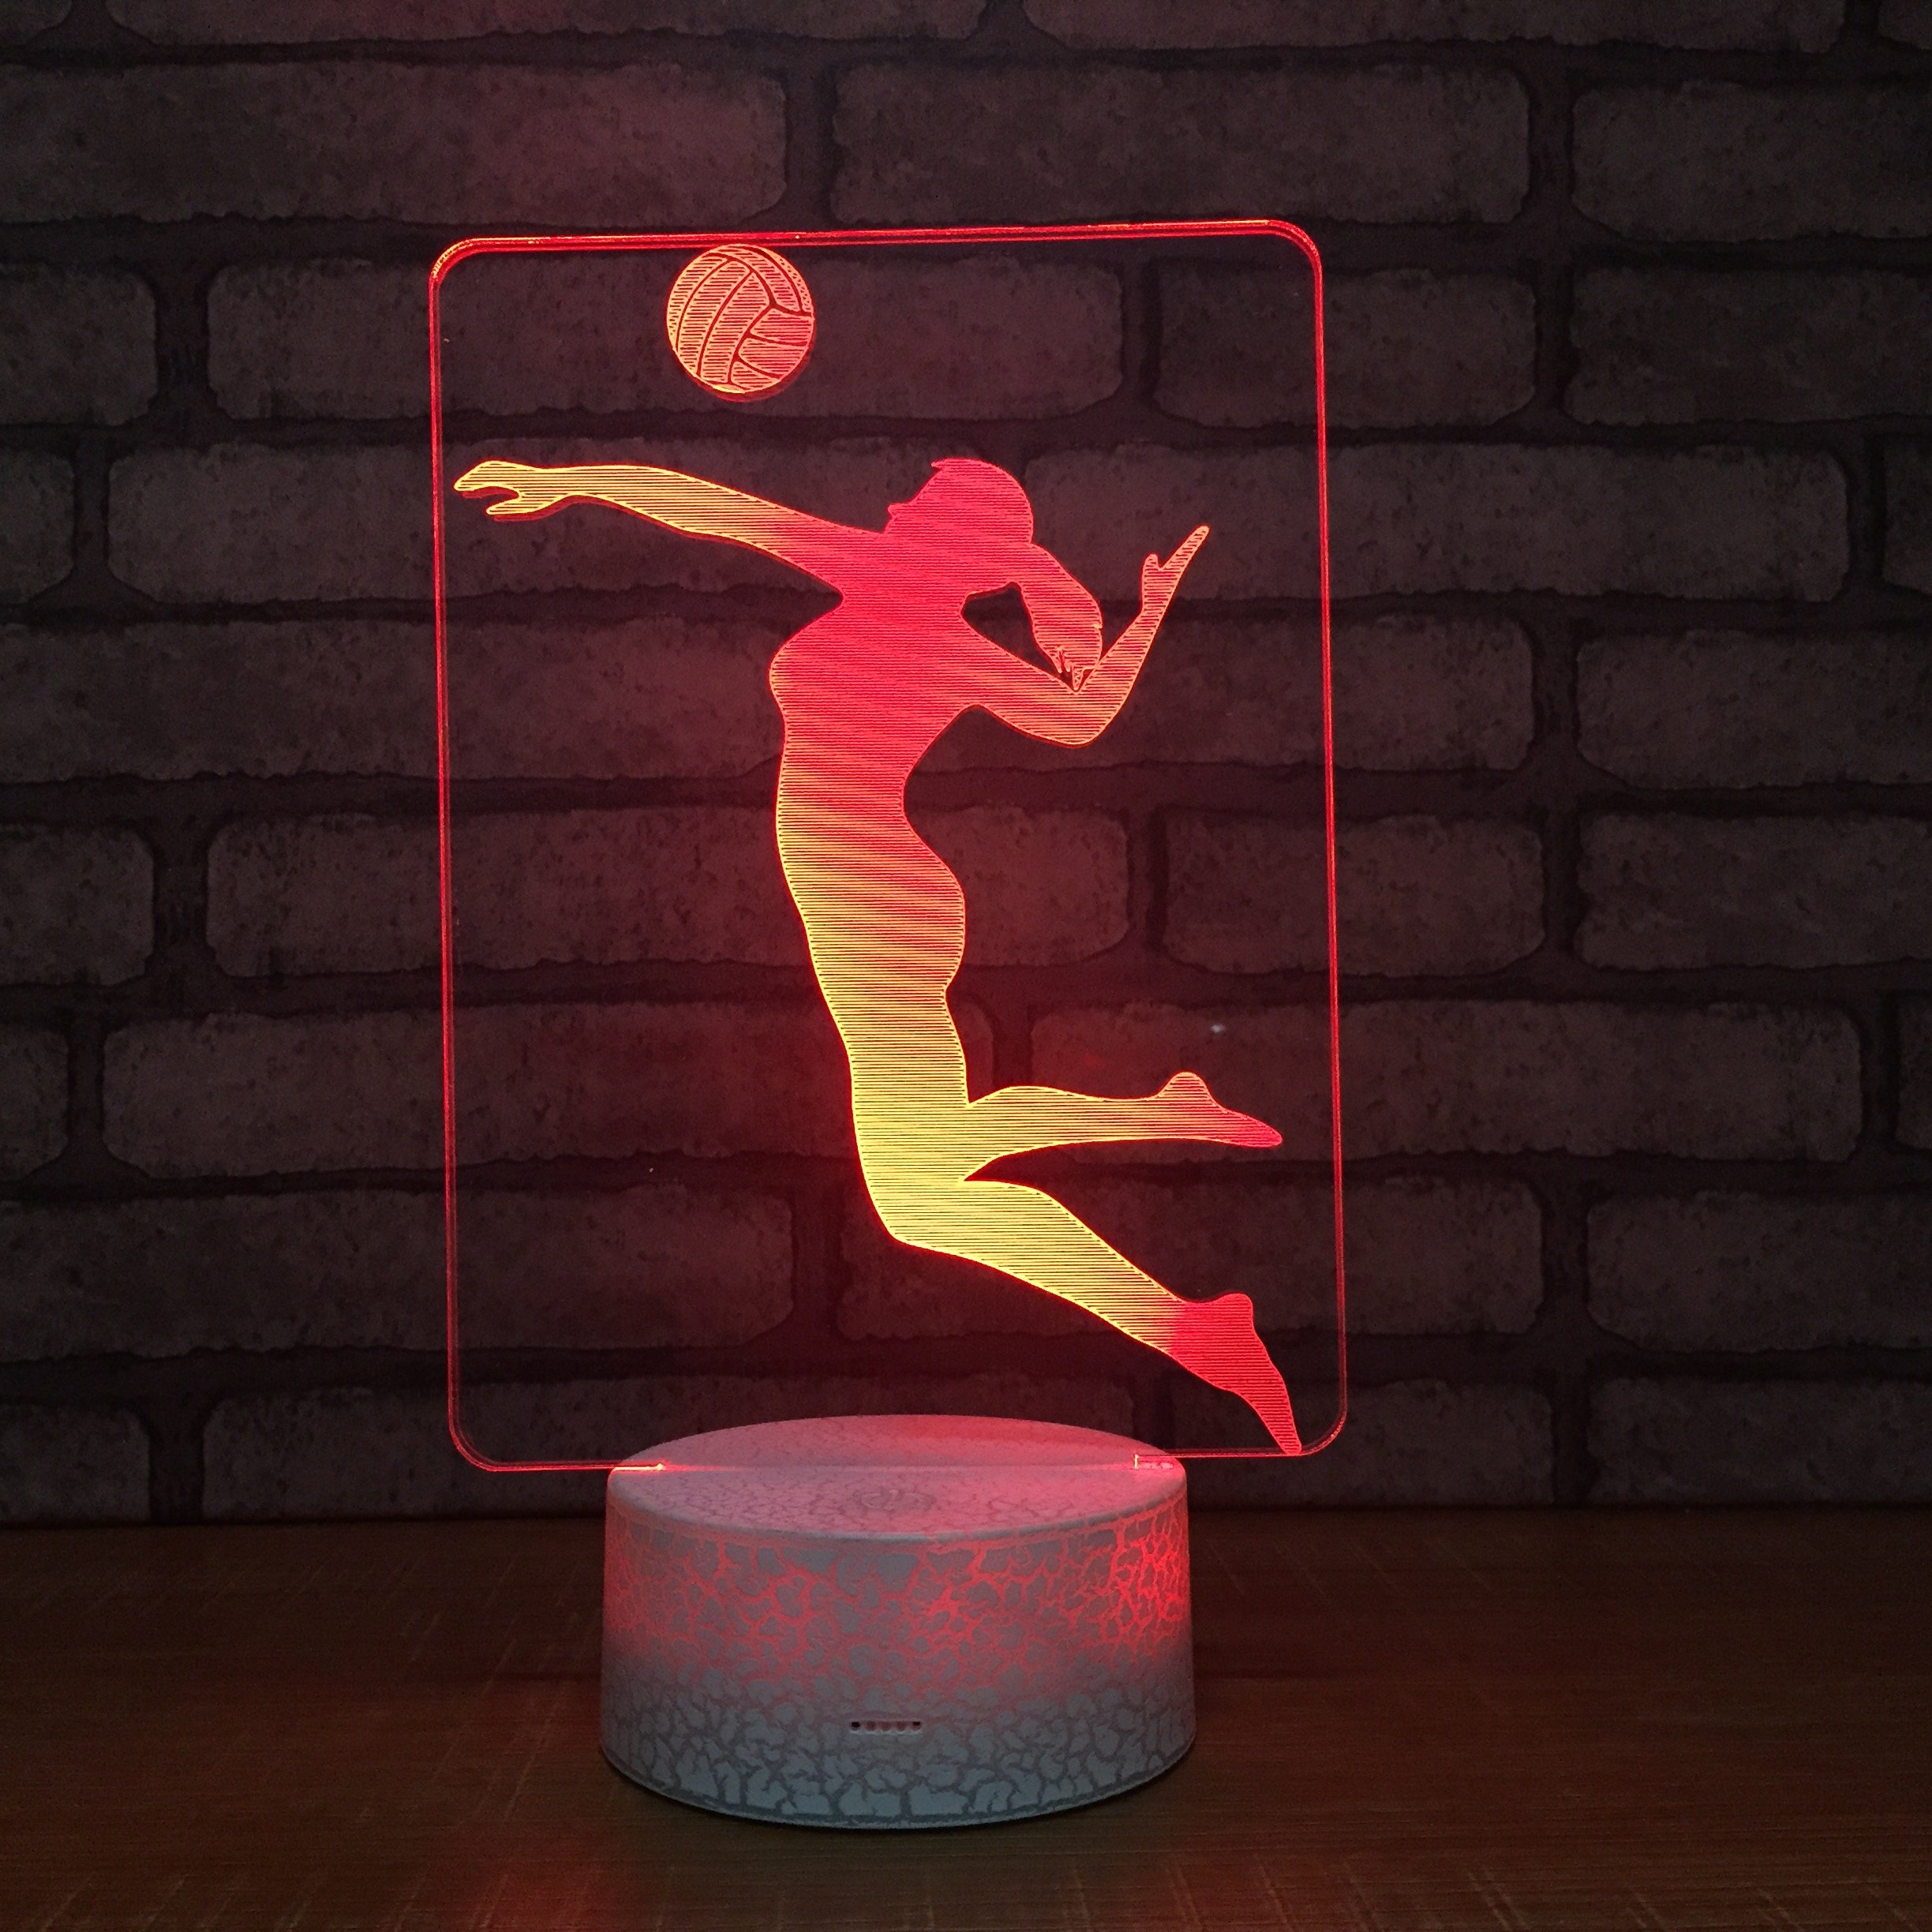 Circle Circle New Sports Female Woman Volleyball Player 3D Optical Illusion Lamp 7 Colors Change Touch Button and 20 Keys Remote Controller LED Night Light Toys for Children Kids